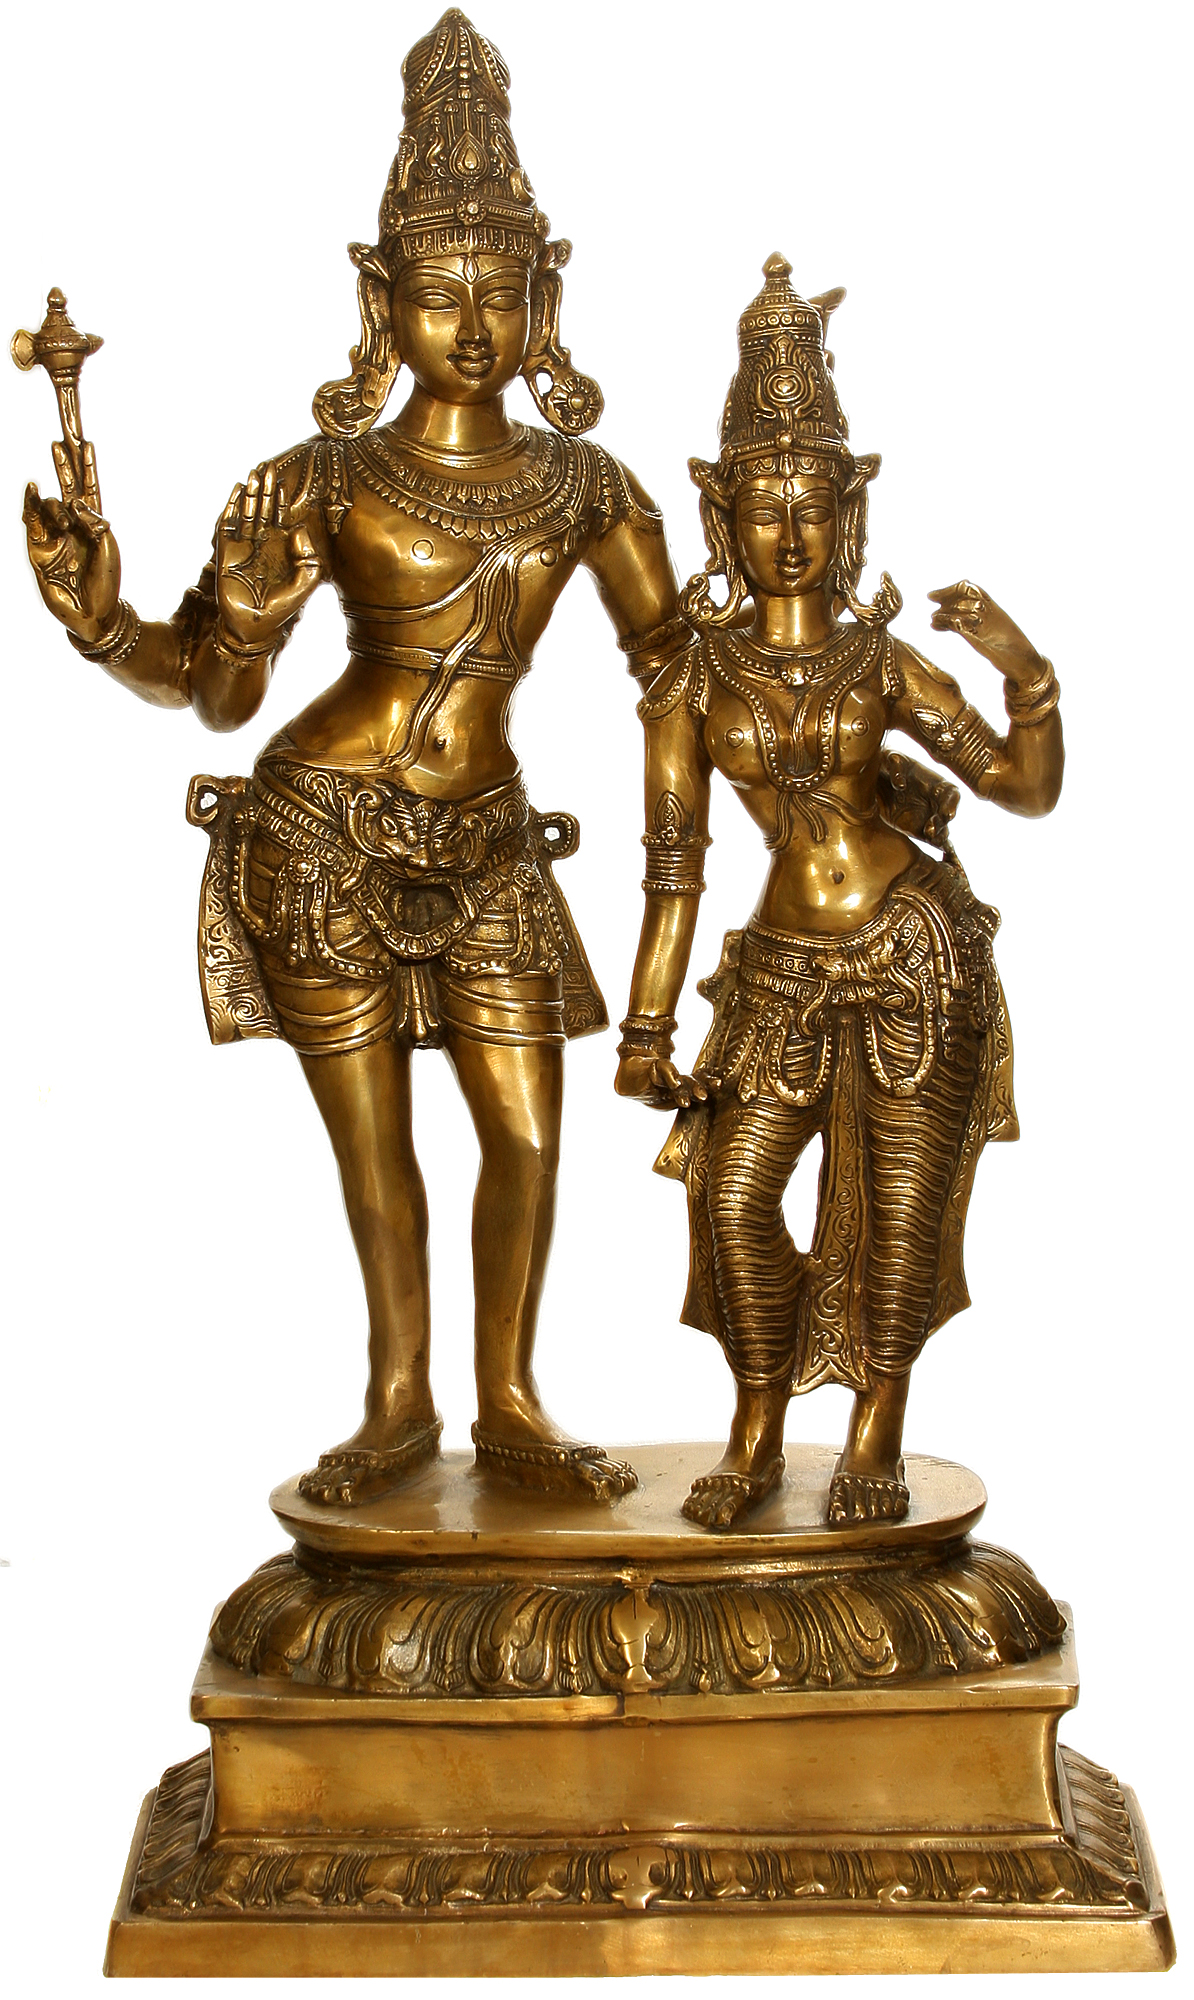 Dancing shiva small rectangle shiva abalonelocal color most colored -  10 Shiva Parvati Statue Lord With